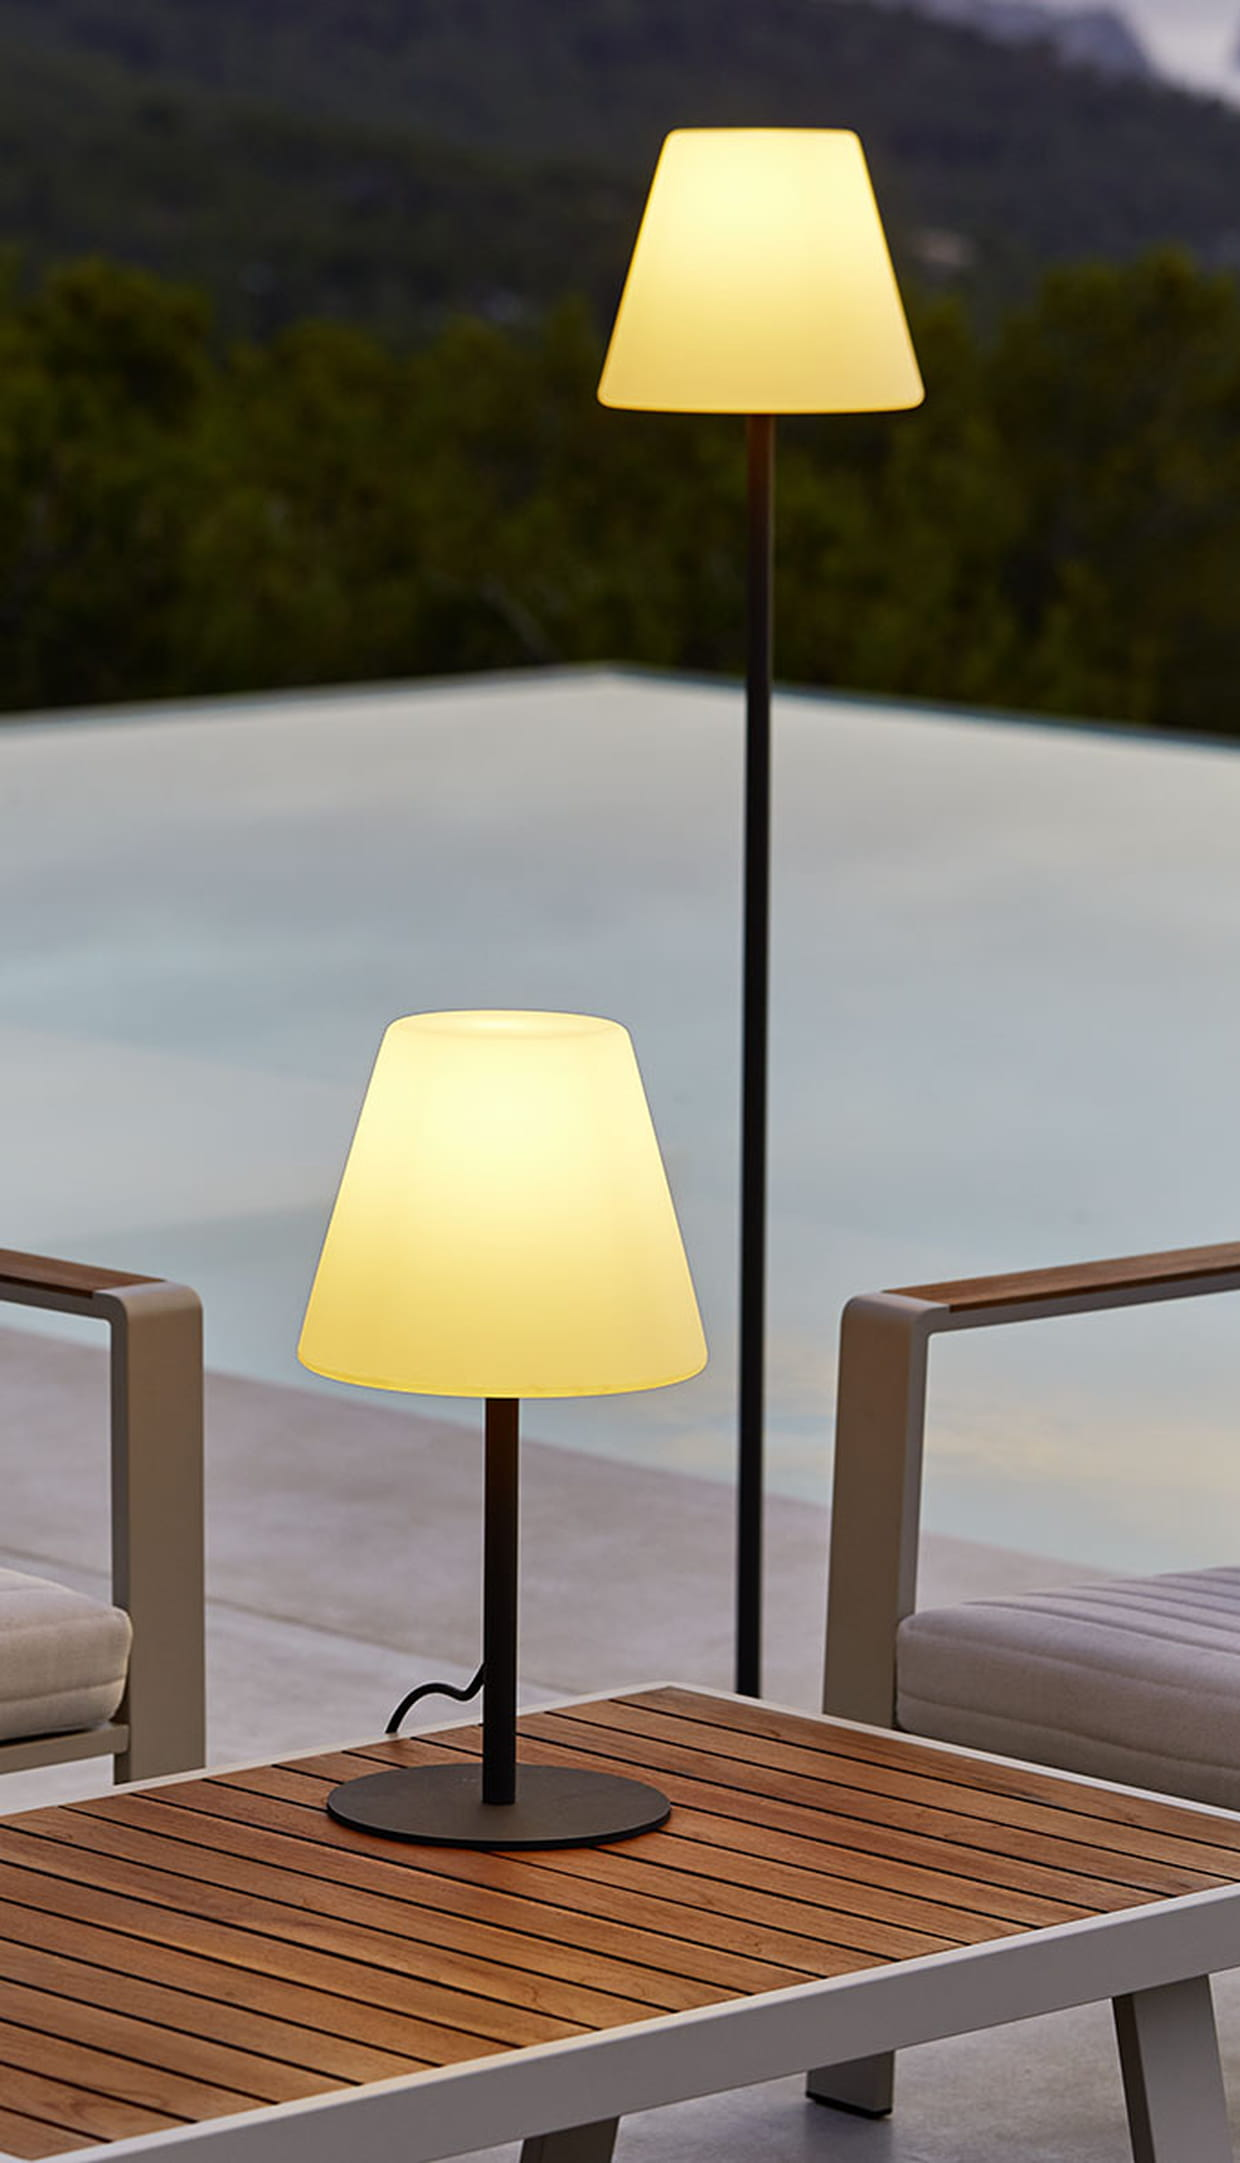 Lampadaire et lampe de table de carrefour for Table exterieur carrefour